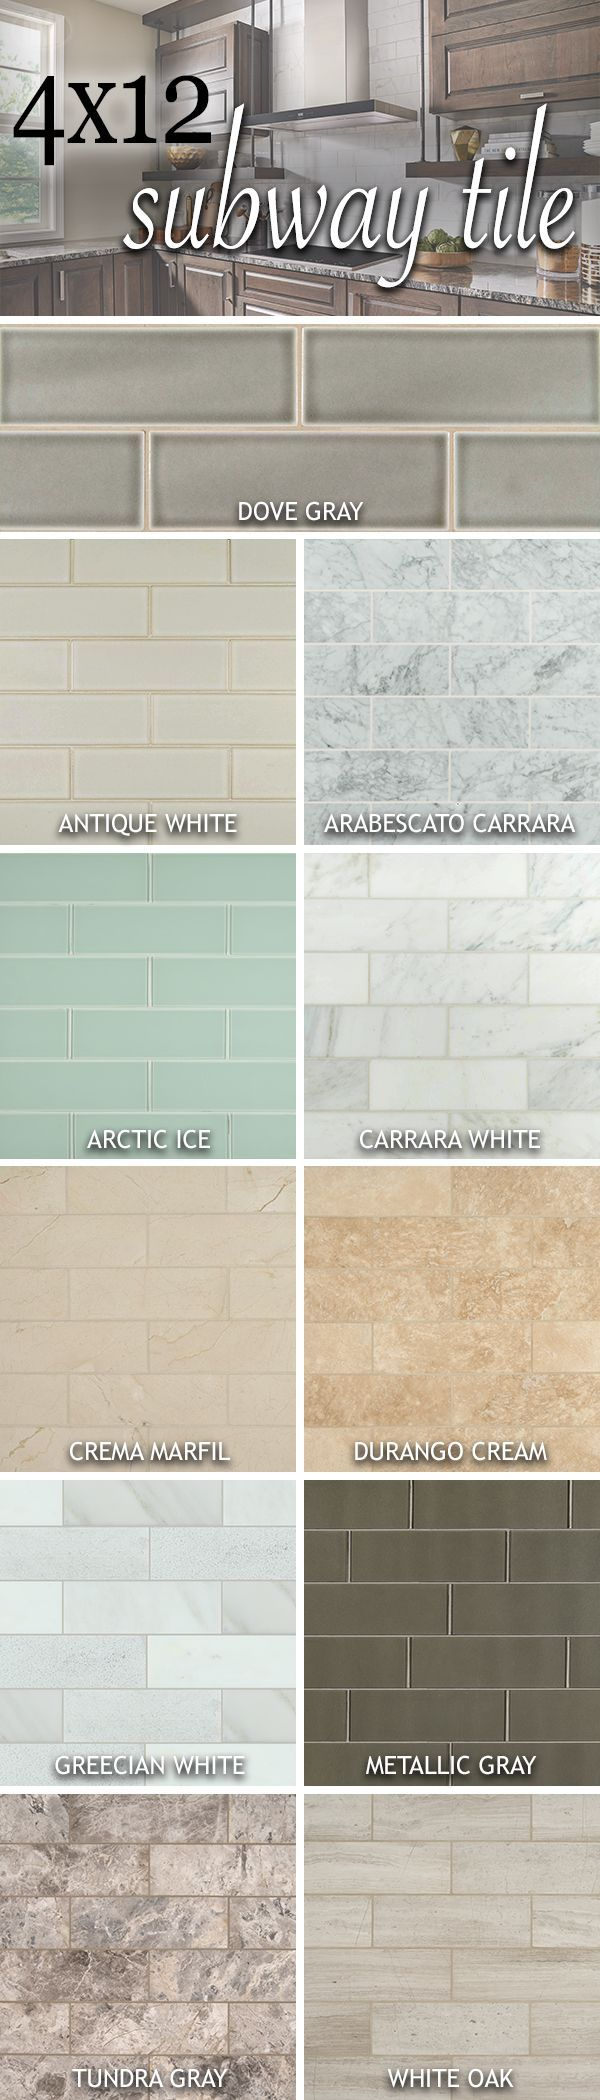 Best 25 marble subway tiles ideas on pinterest white fireplace best 25 marble subway tiles ideas on pinterest white fireplace mantels backsplash marble and marble tile backsplash dailygadgetfo Image collections